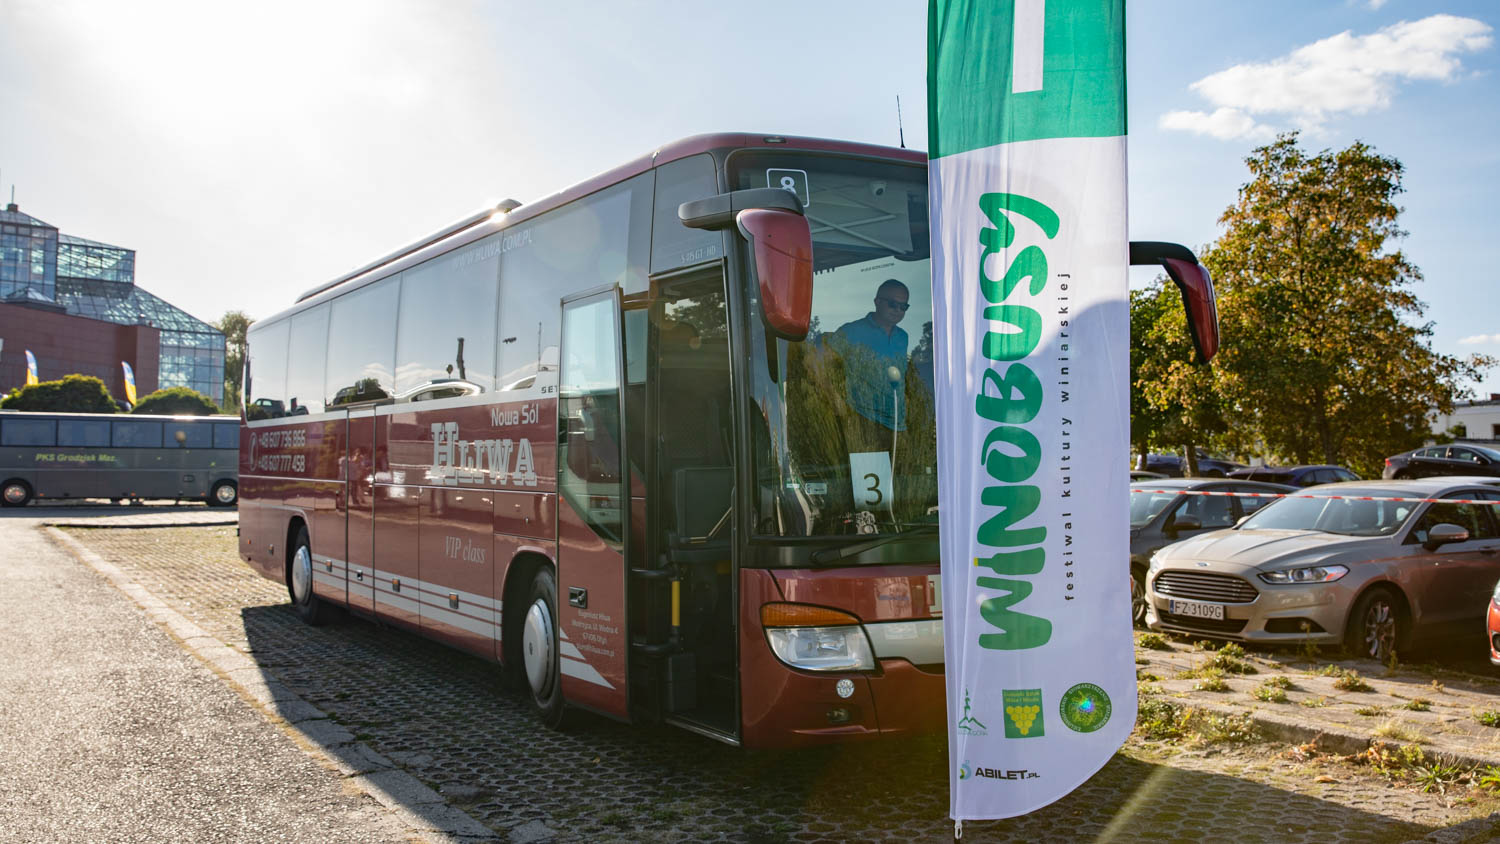 Winobusy is a bus that takes you to a wine tasting